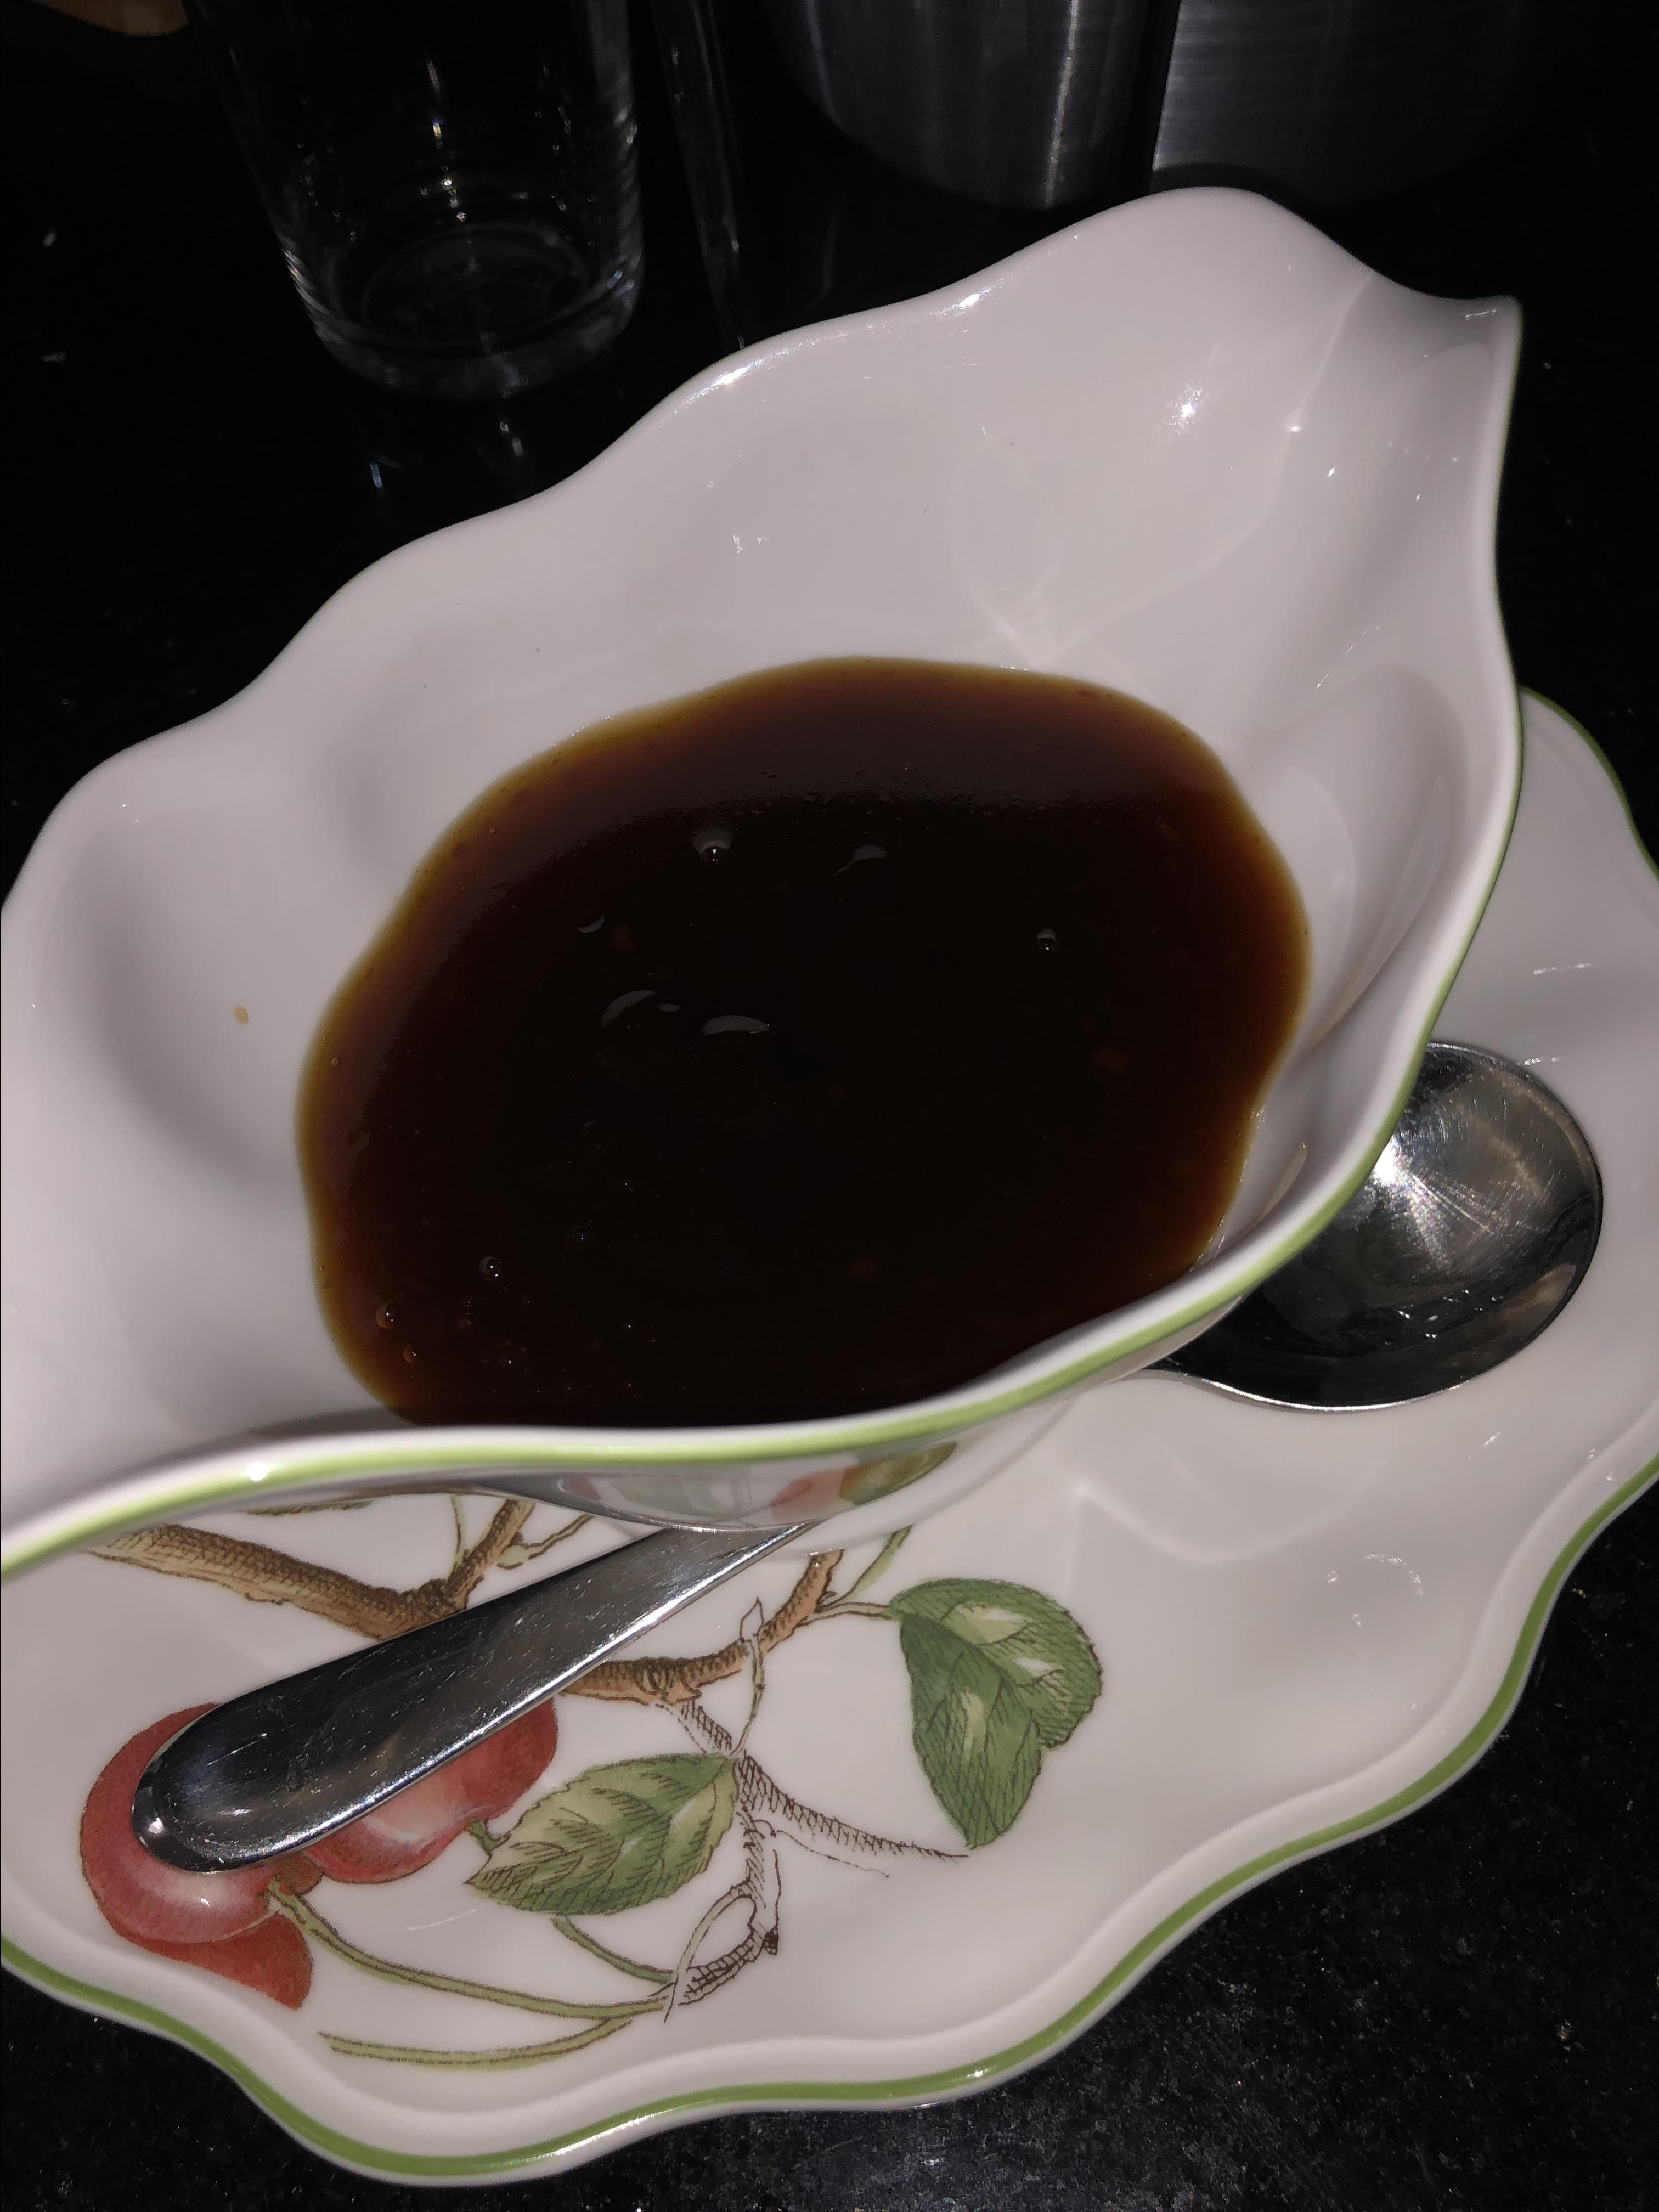 Sweet and Sour Sauce I